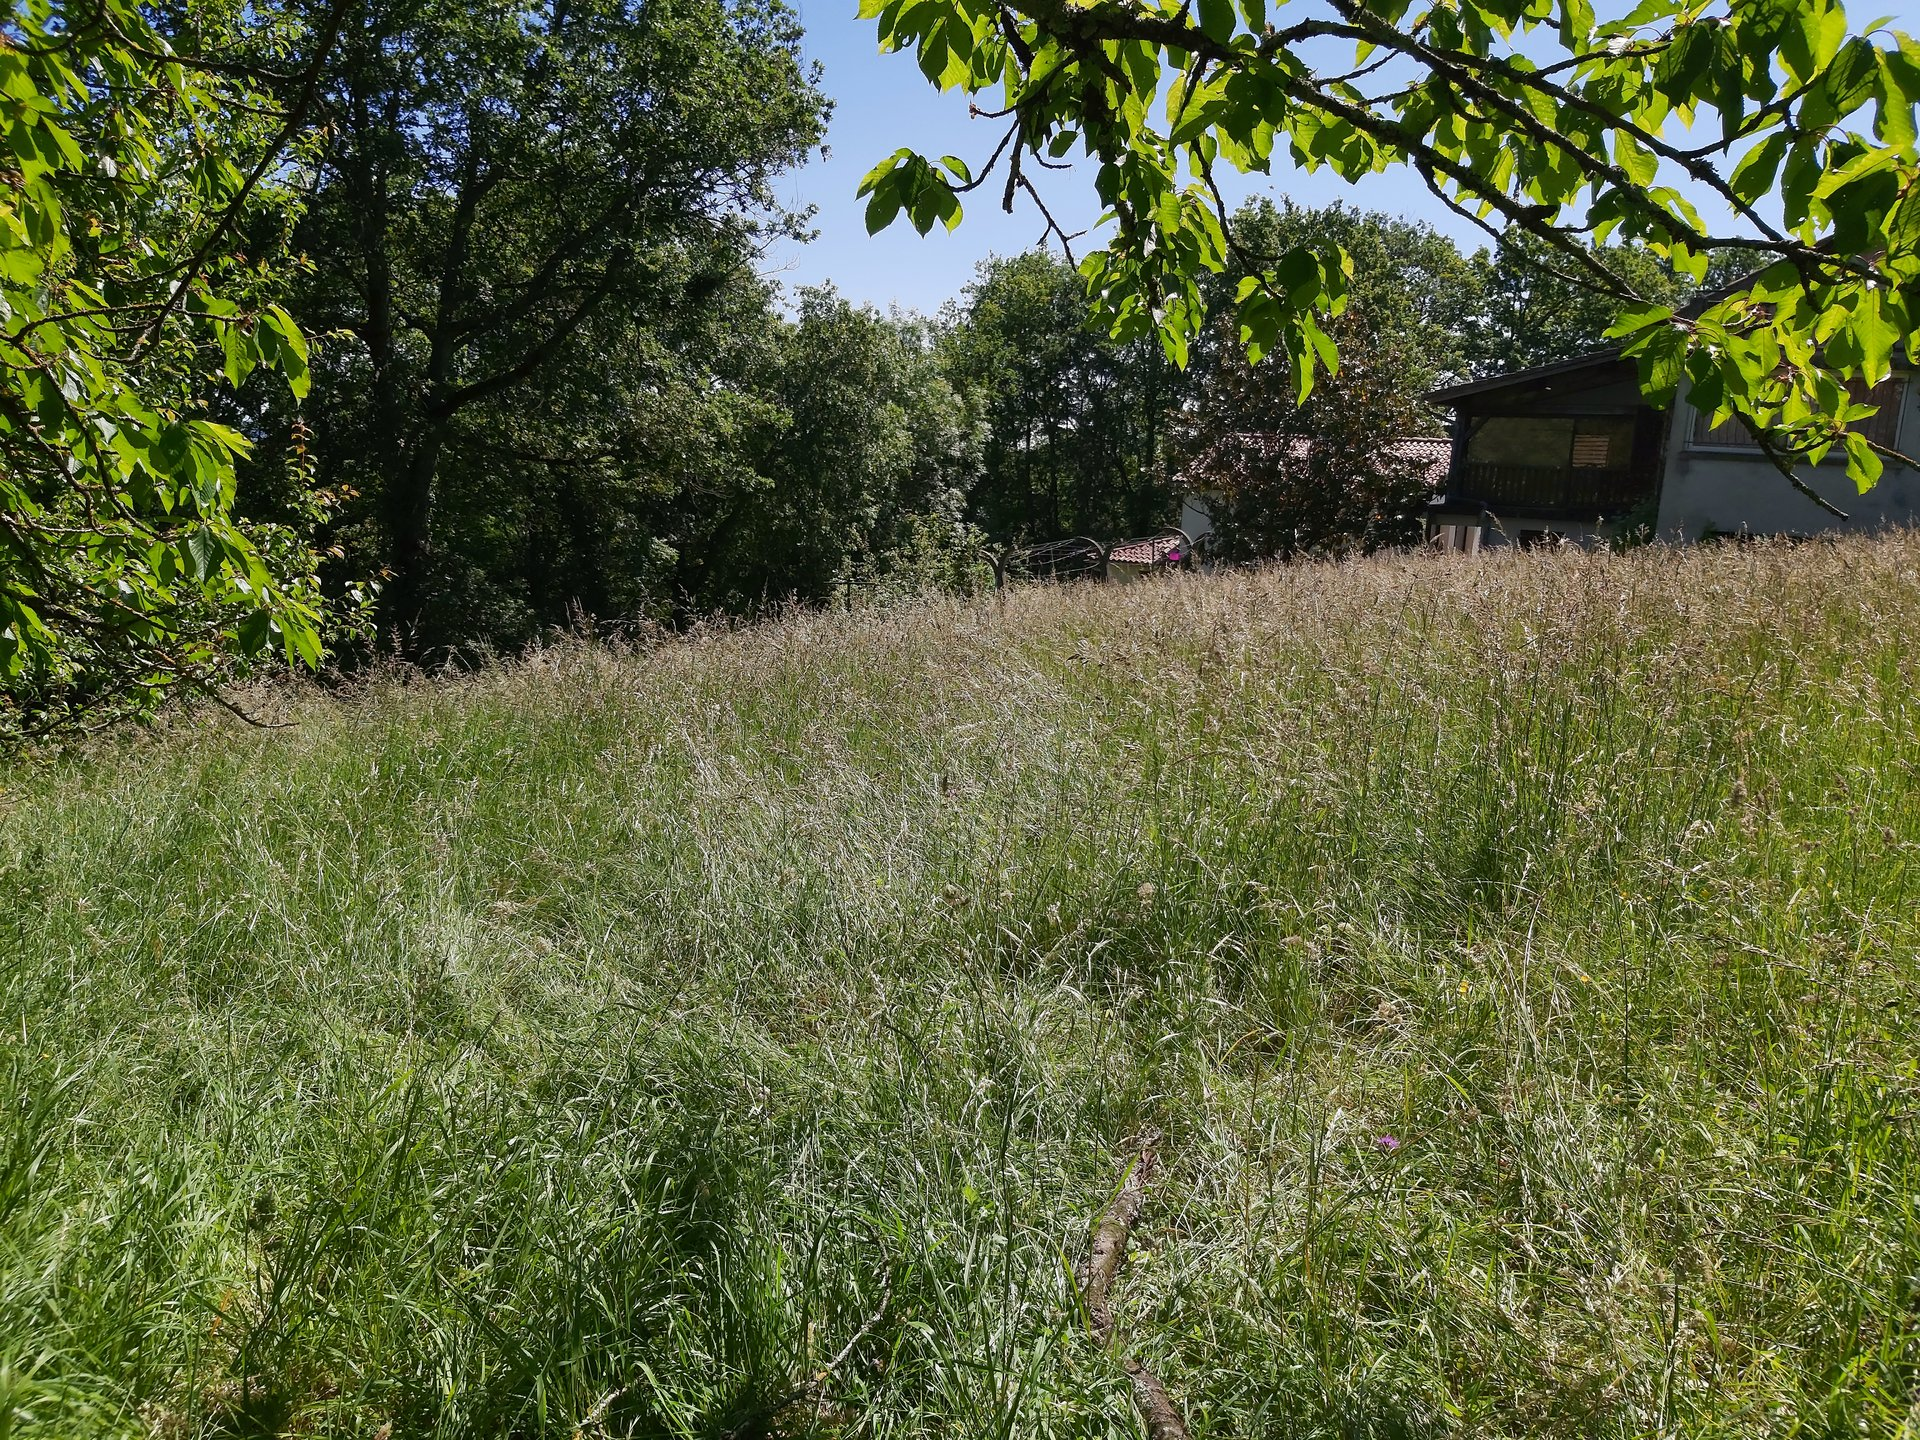 Exclusive in Aurignac, buildng plot with orchard and oaks trees